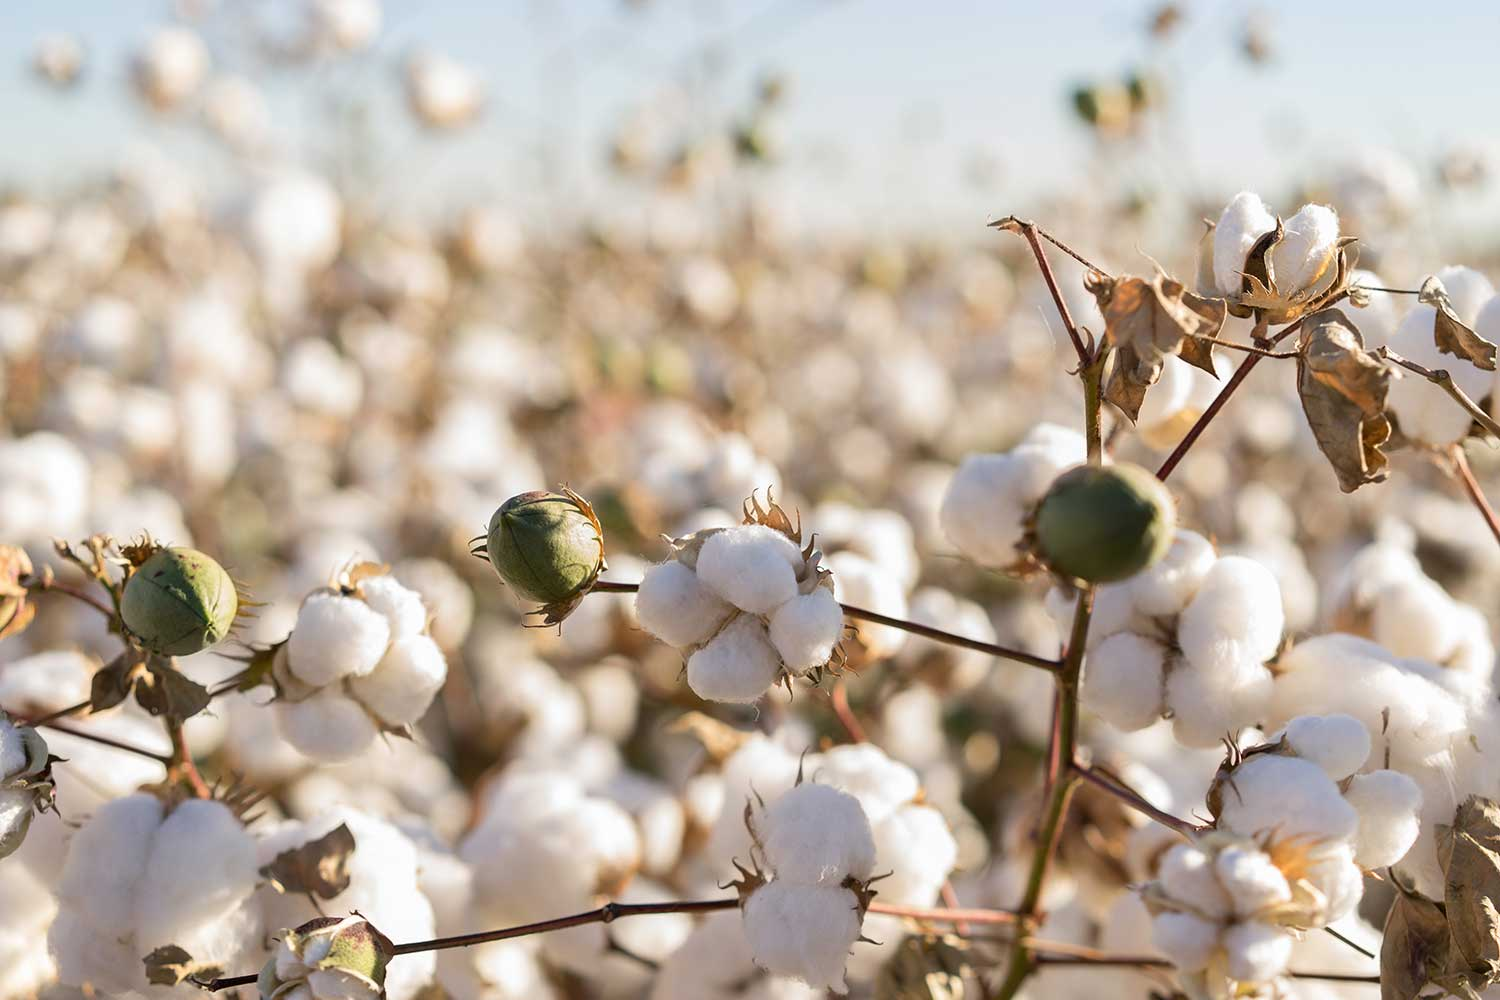 Cotton with a Conscience